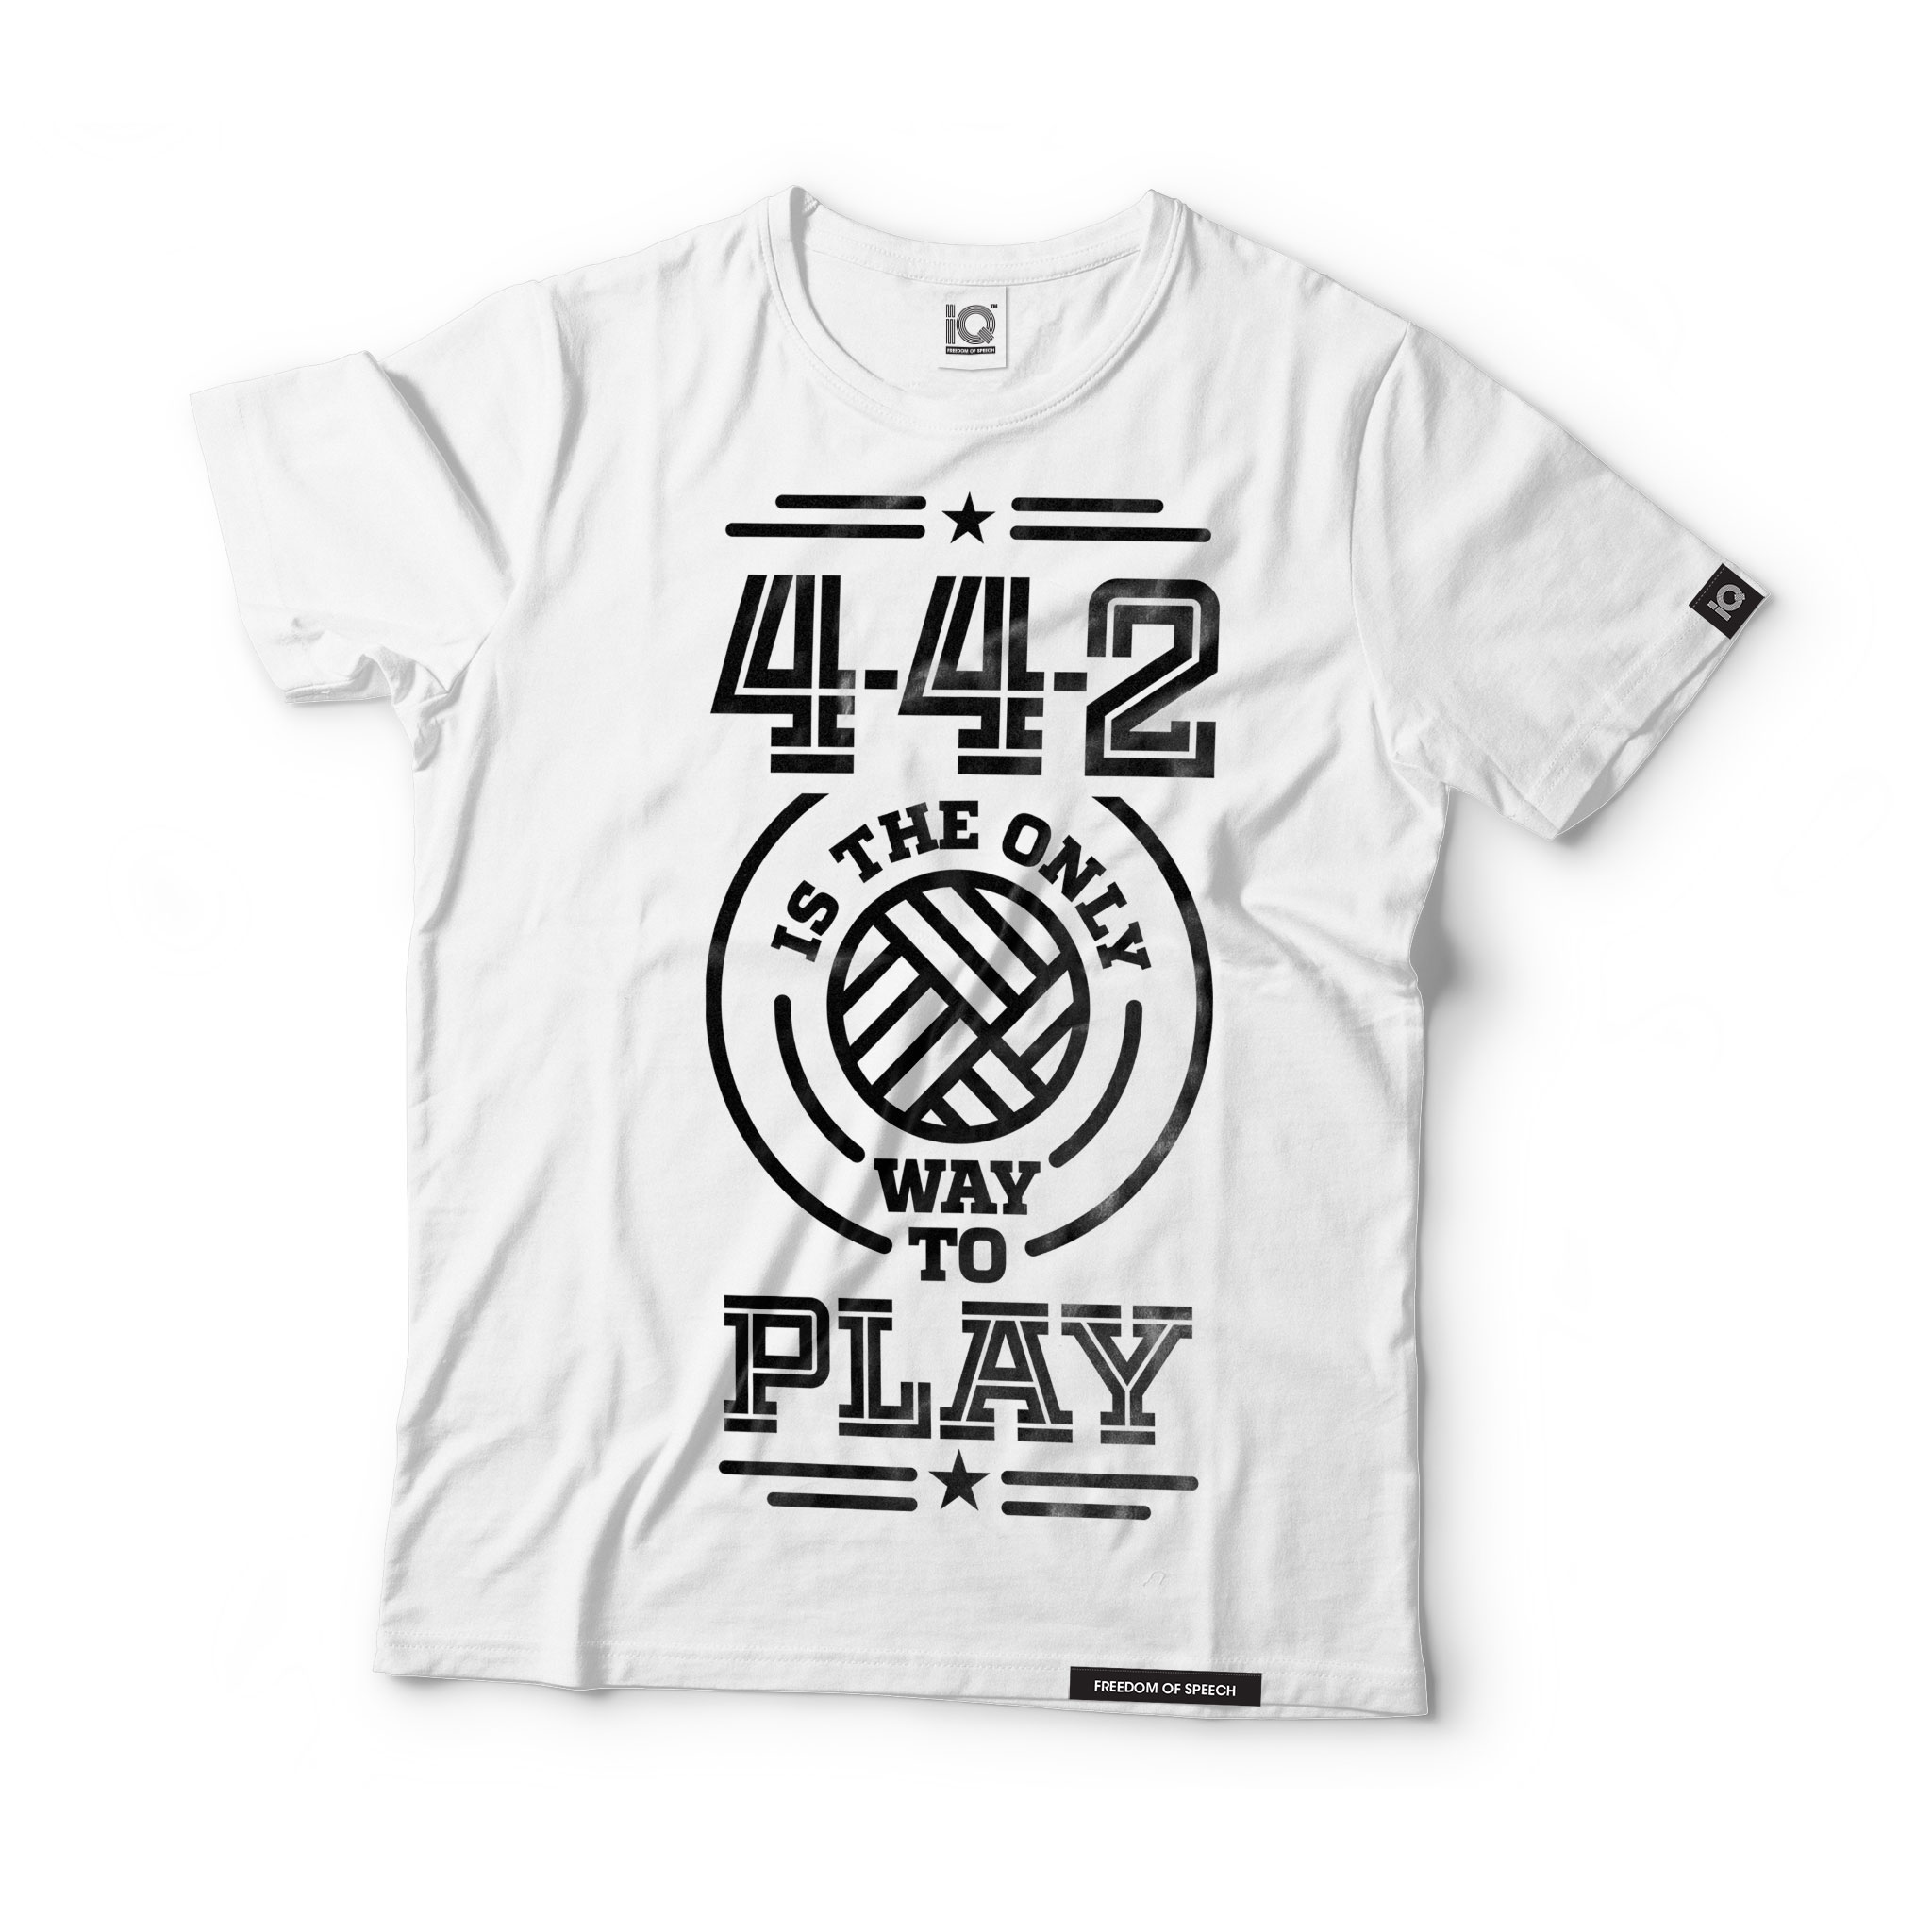 4-4-2-is-the-only-way-to-play-white-tshirt